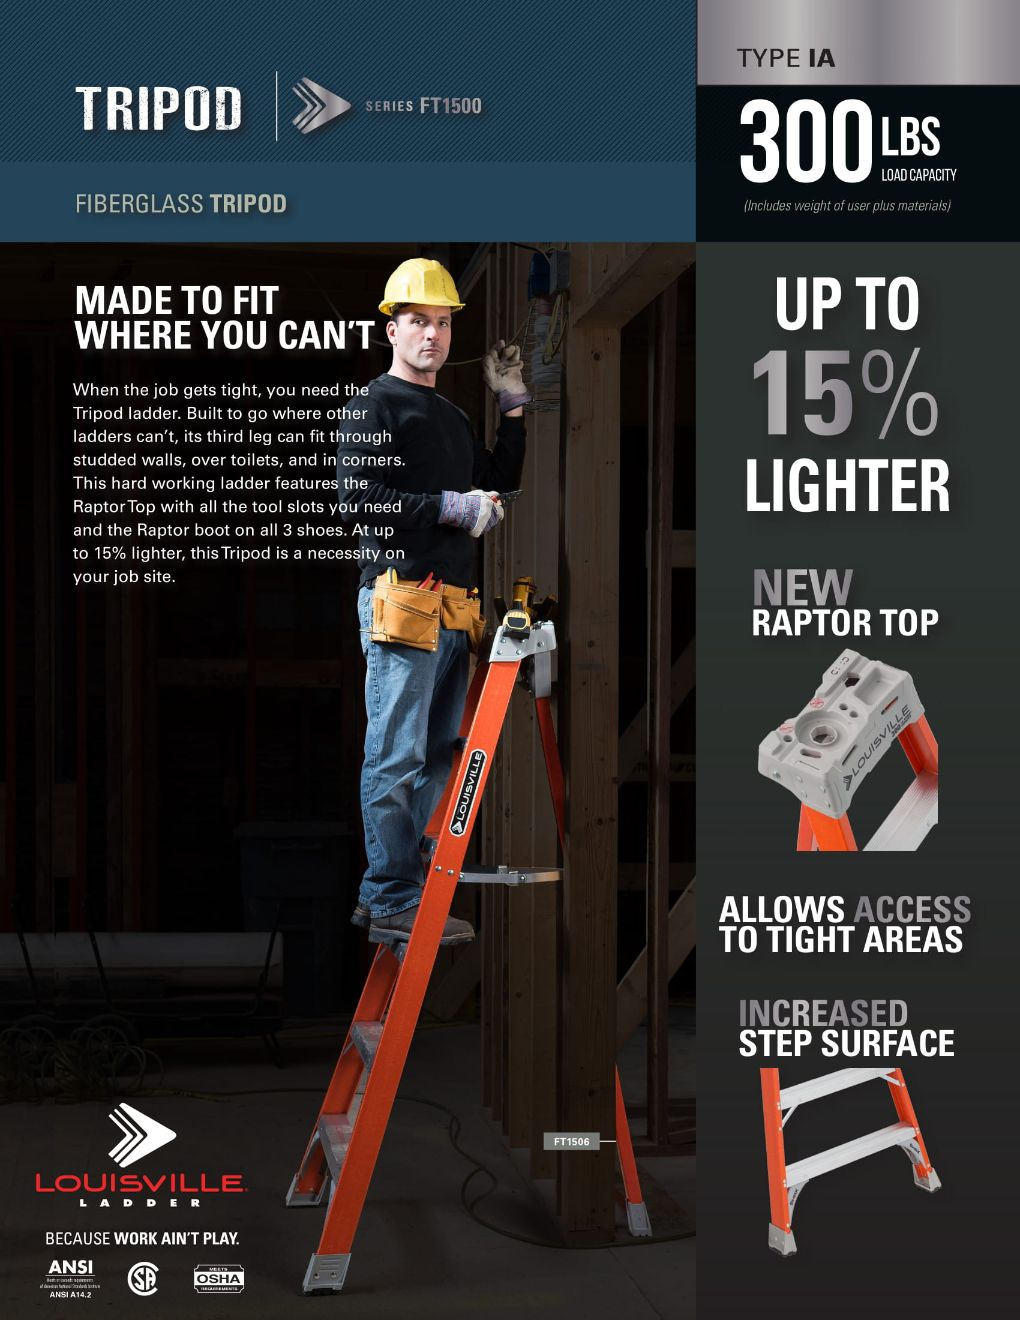 FT1500 Tripod Ladder Flyer and Spec Sheet Marketing Material Image